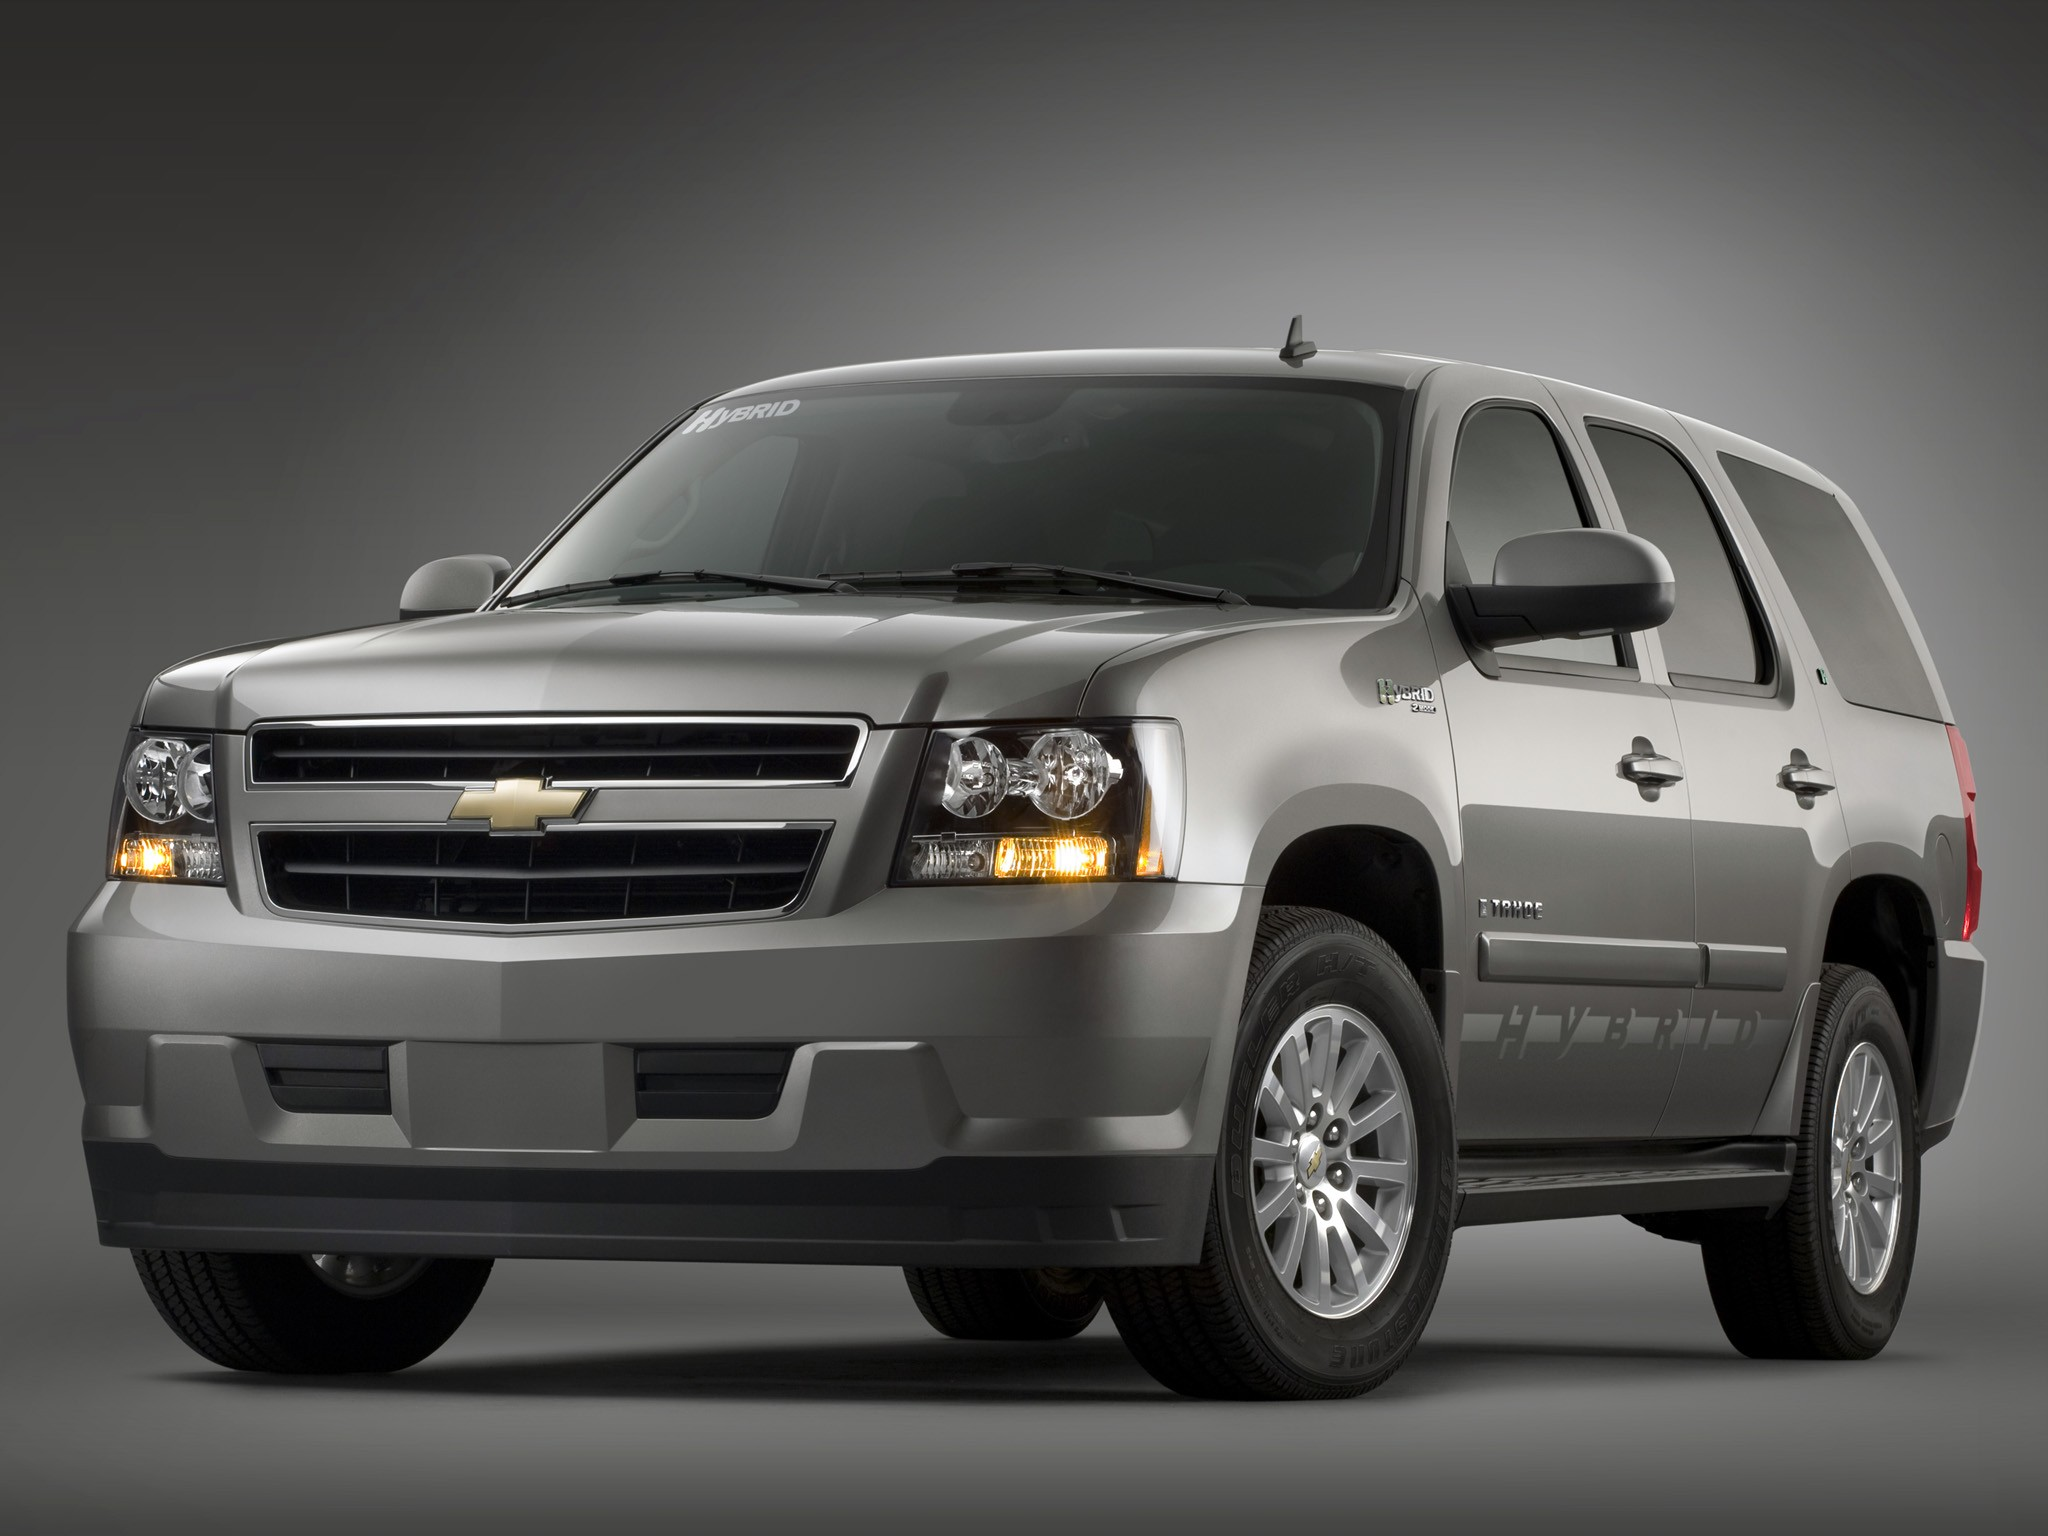 chevrolet tahoe specs 2008 2009 2010 2011 2012 2013 2014 autoevolution. Black Bedroom Furniture Sets. Home Design Ideas